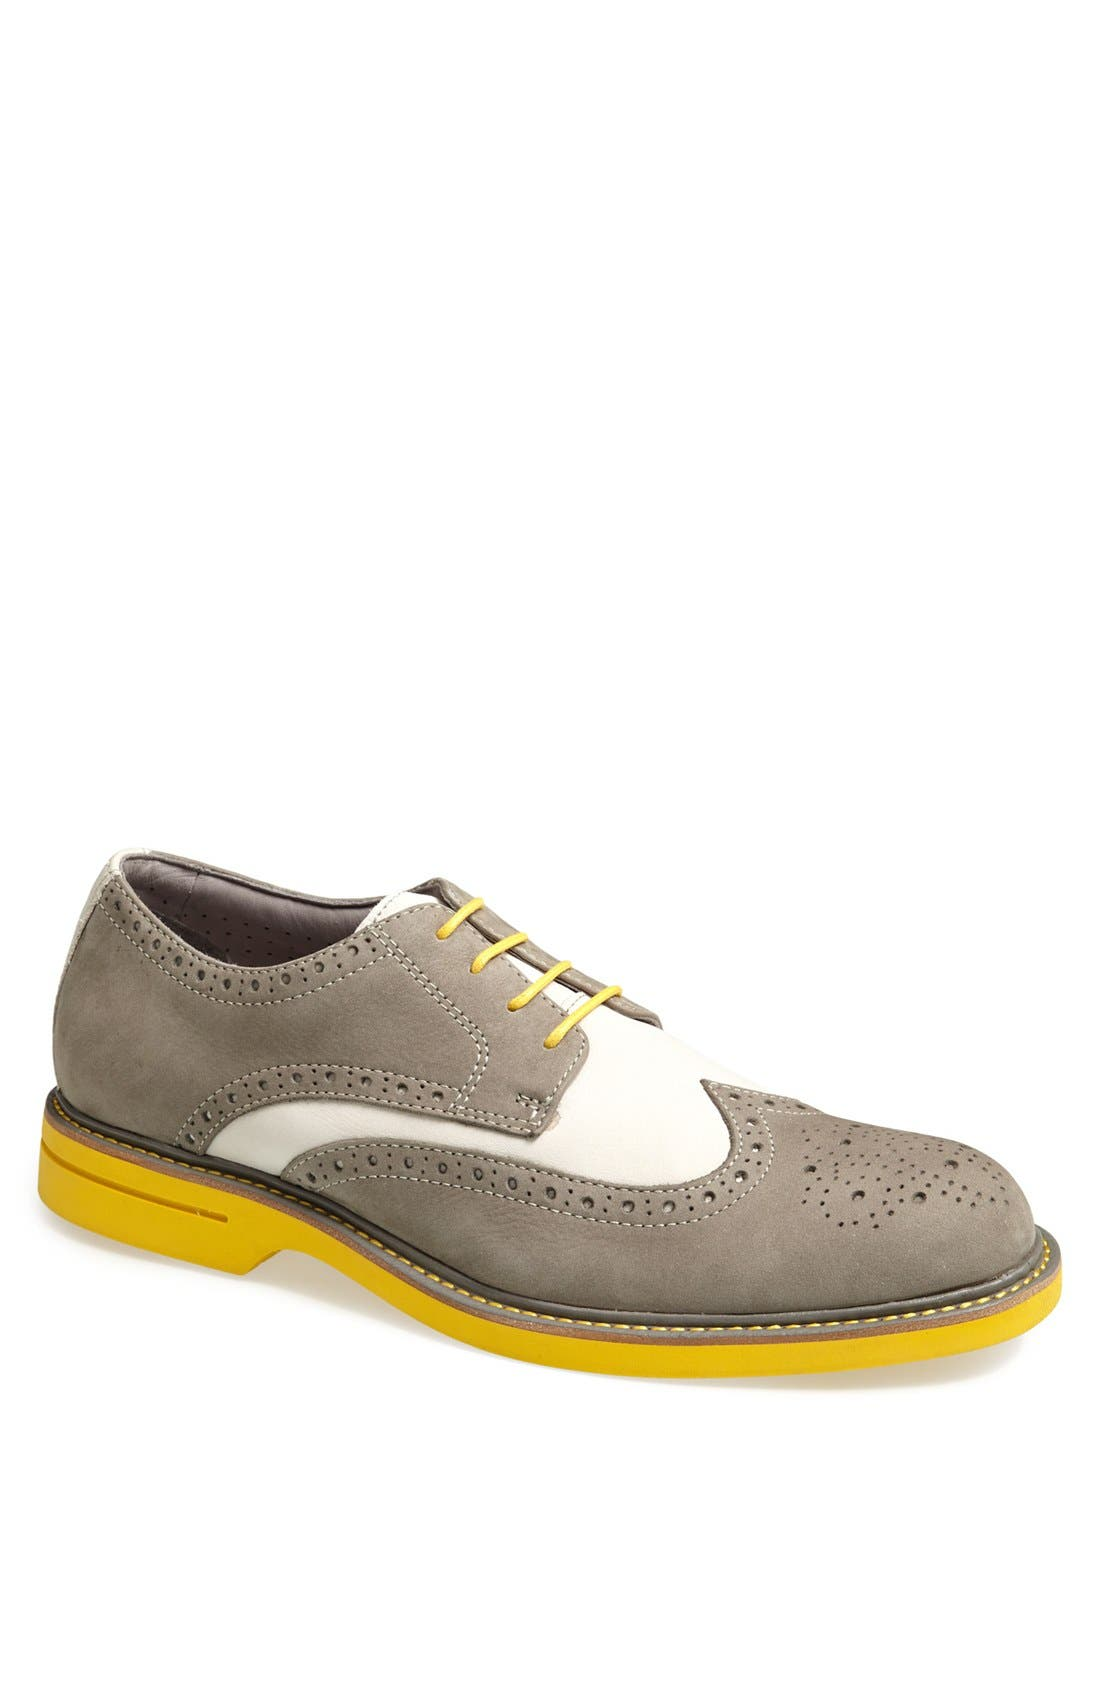 Alternate Image 1 Selected - Sperry Top-Sider® 'Gold Cup - ASV' Spectator Shoe